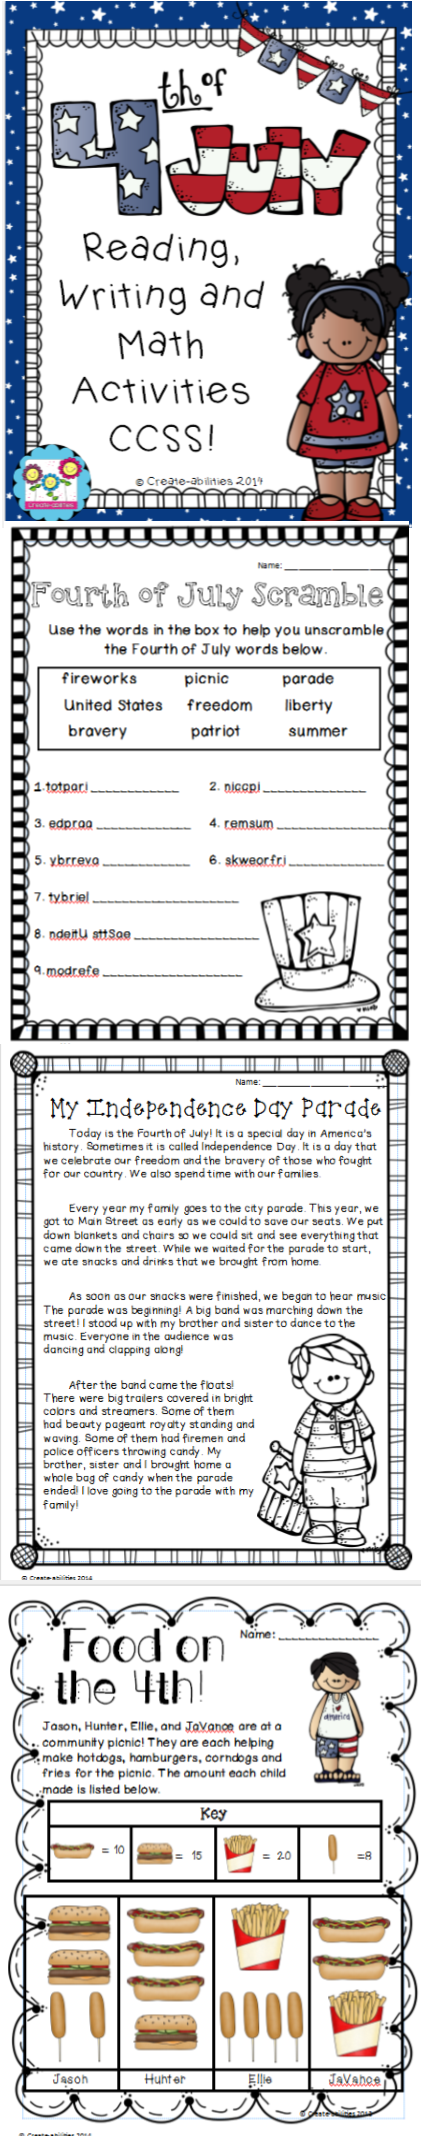 Fourth Of July Activities Printable And Digital 4th Of July Fourth Of July Activity Pack [ 2137 x 422 Pixel ]